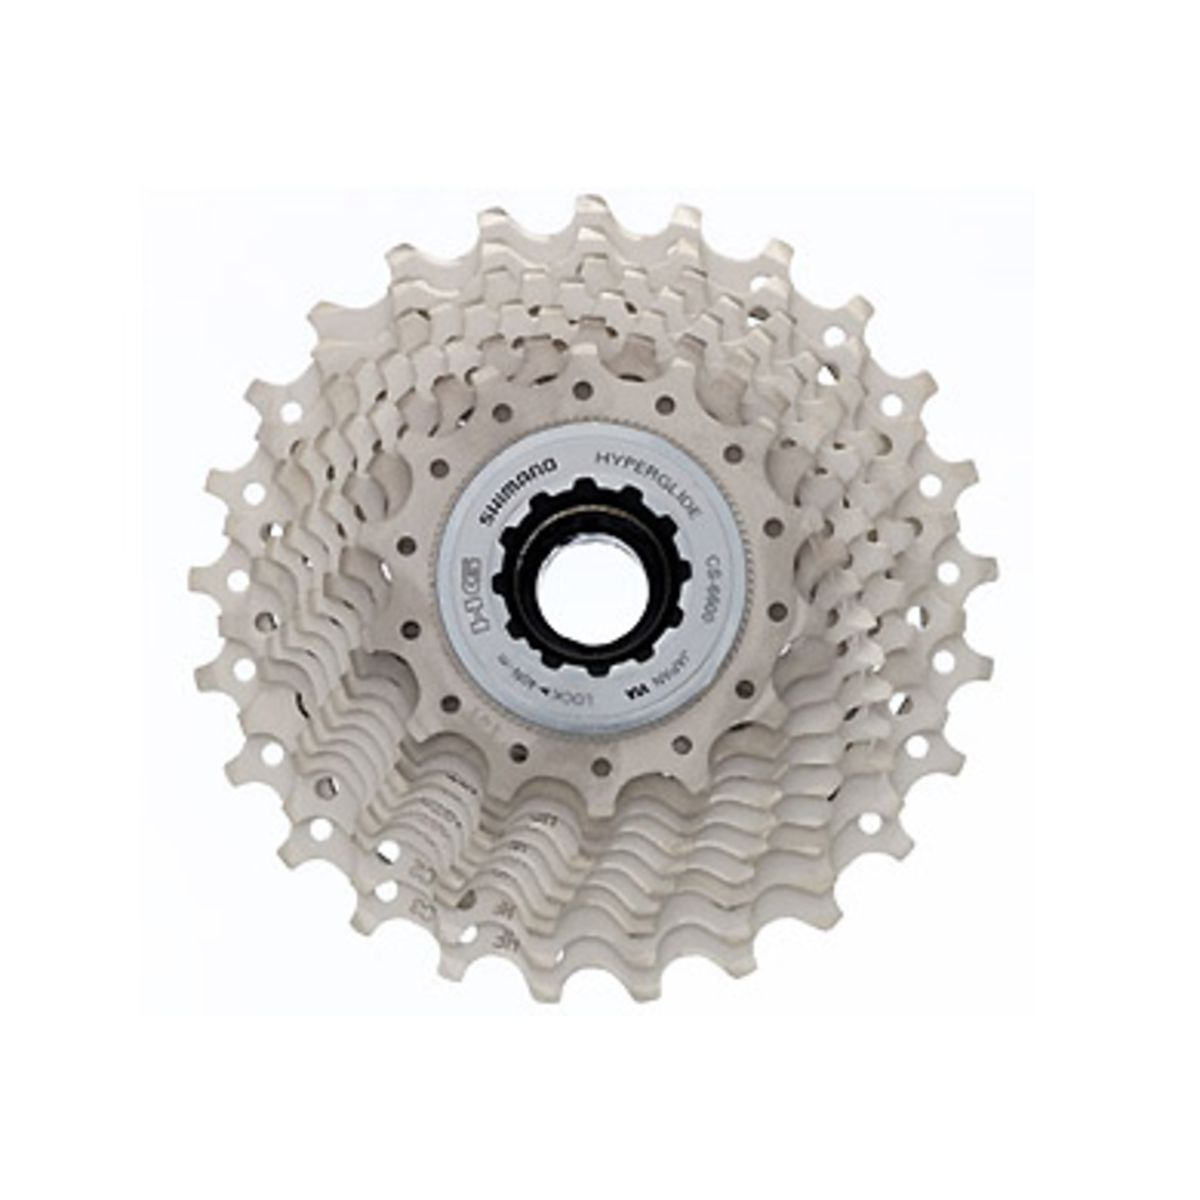 Ultegra CS-6600 10-speed cassette 16-27 ratio